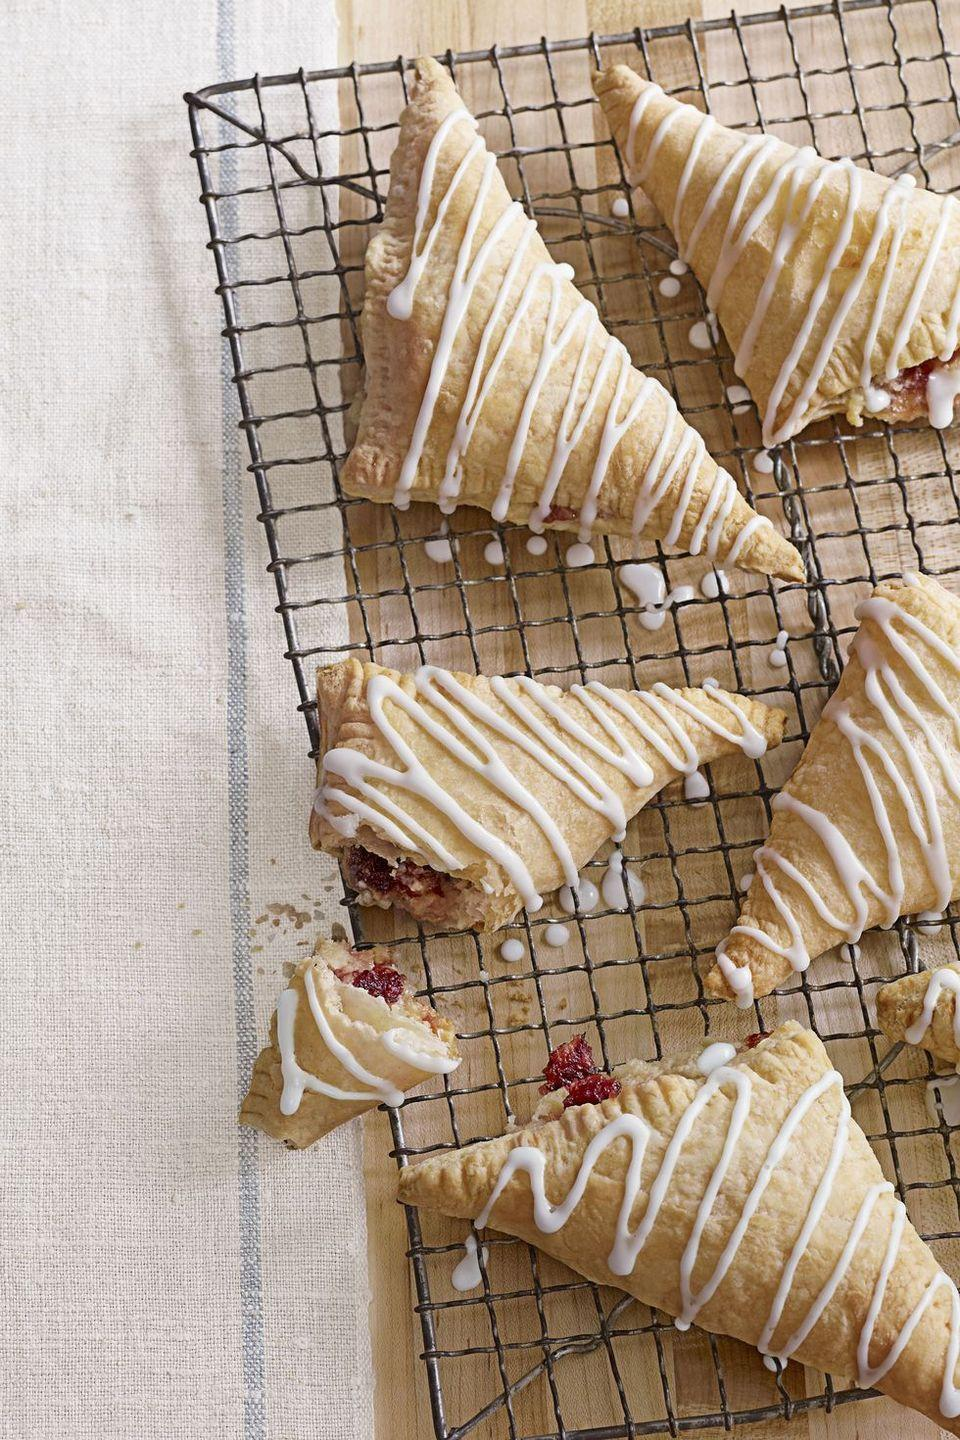 """<p>Right after the dinner guests leave, start preparing for the next morning by whipping up a batch of these breakfast-ready turnovers. </p><p><em><a href=""""https://www.goodhousekeeping.com/food-recipes/a11258/cranberry-turnovers-recipe-clx1111/"""" rel=""""nofollow noopener"""" target=""""_blank"""" data-ylk=""""slk:Get the recipe for Cranberry Turnovers »"""" class=""""link rapid-noclick-resp"""">Get the recipe for Cranberry Turnovers »</a></em></p>"""